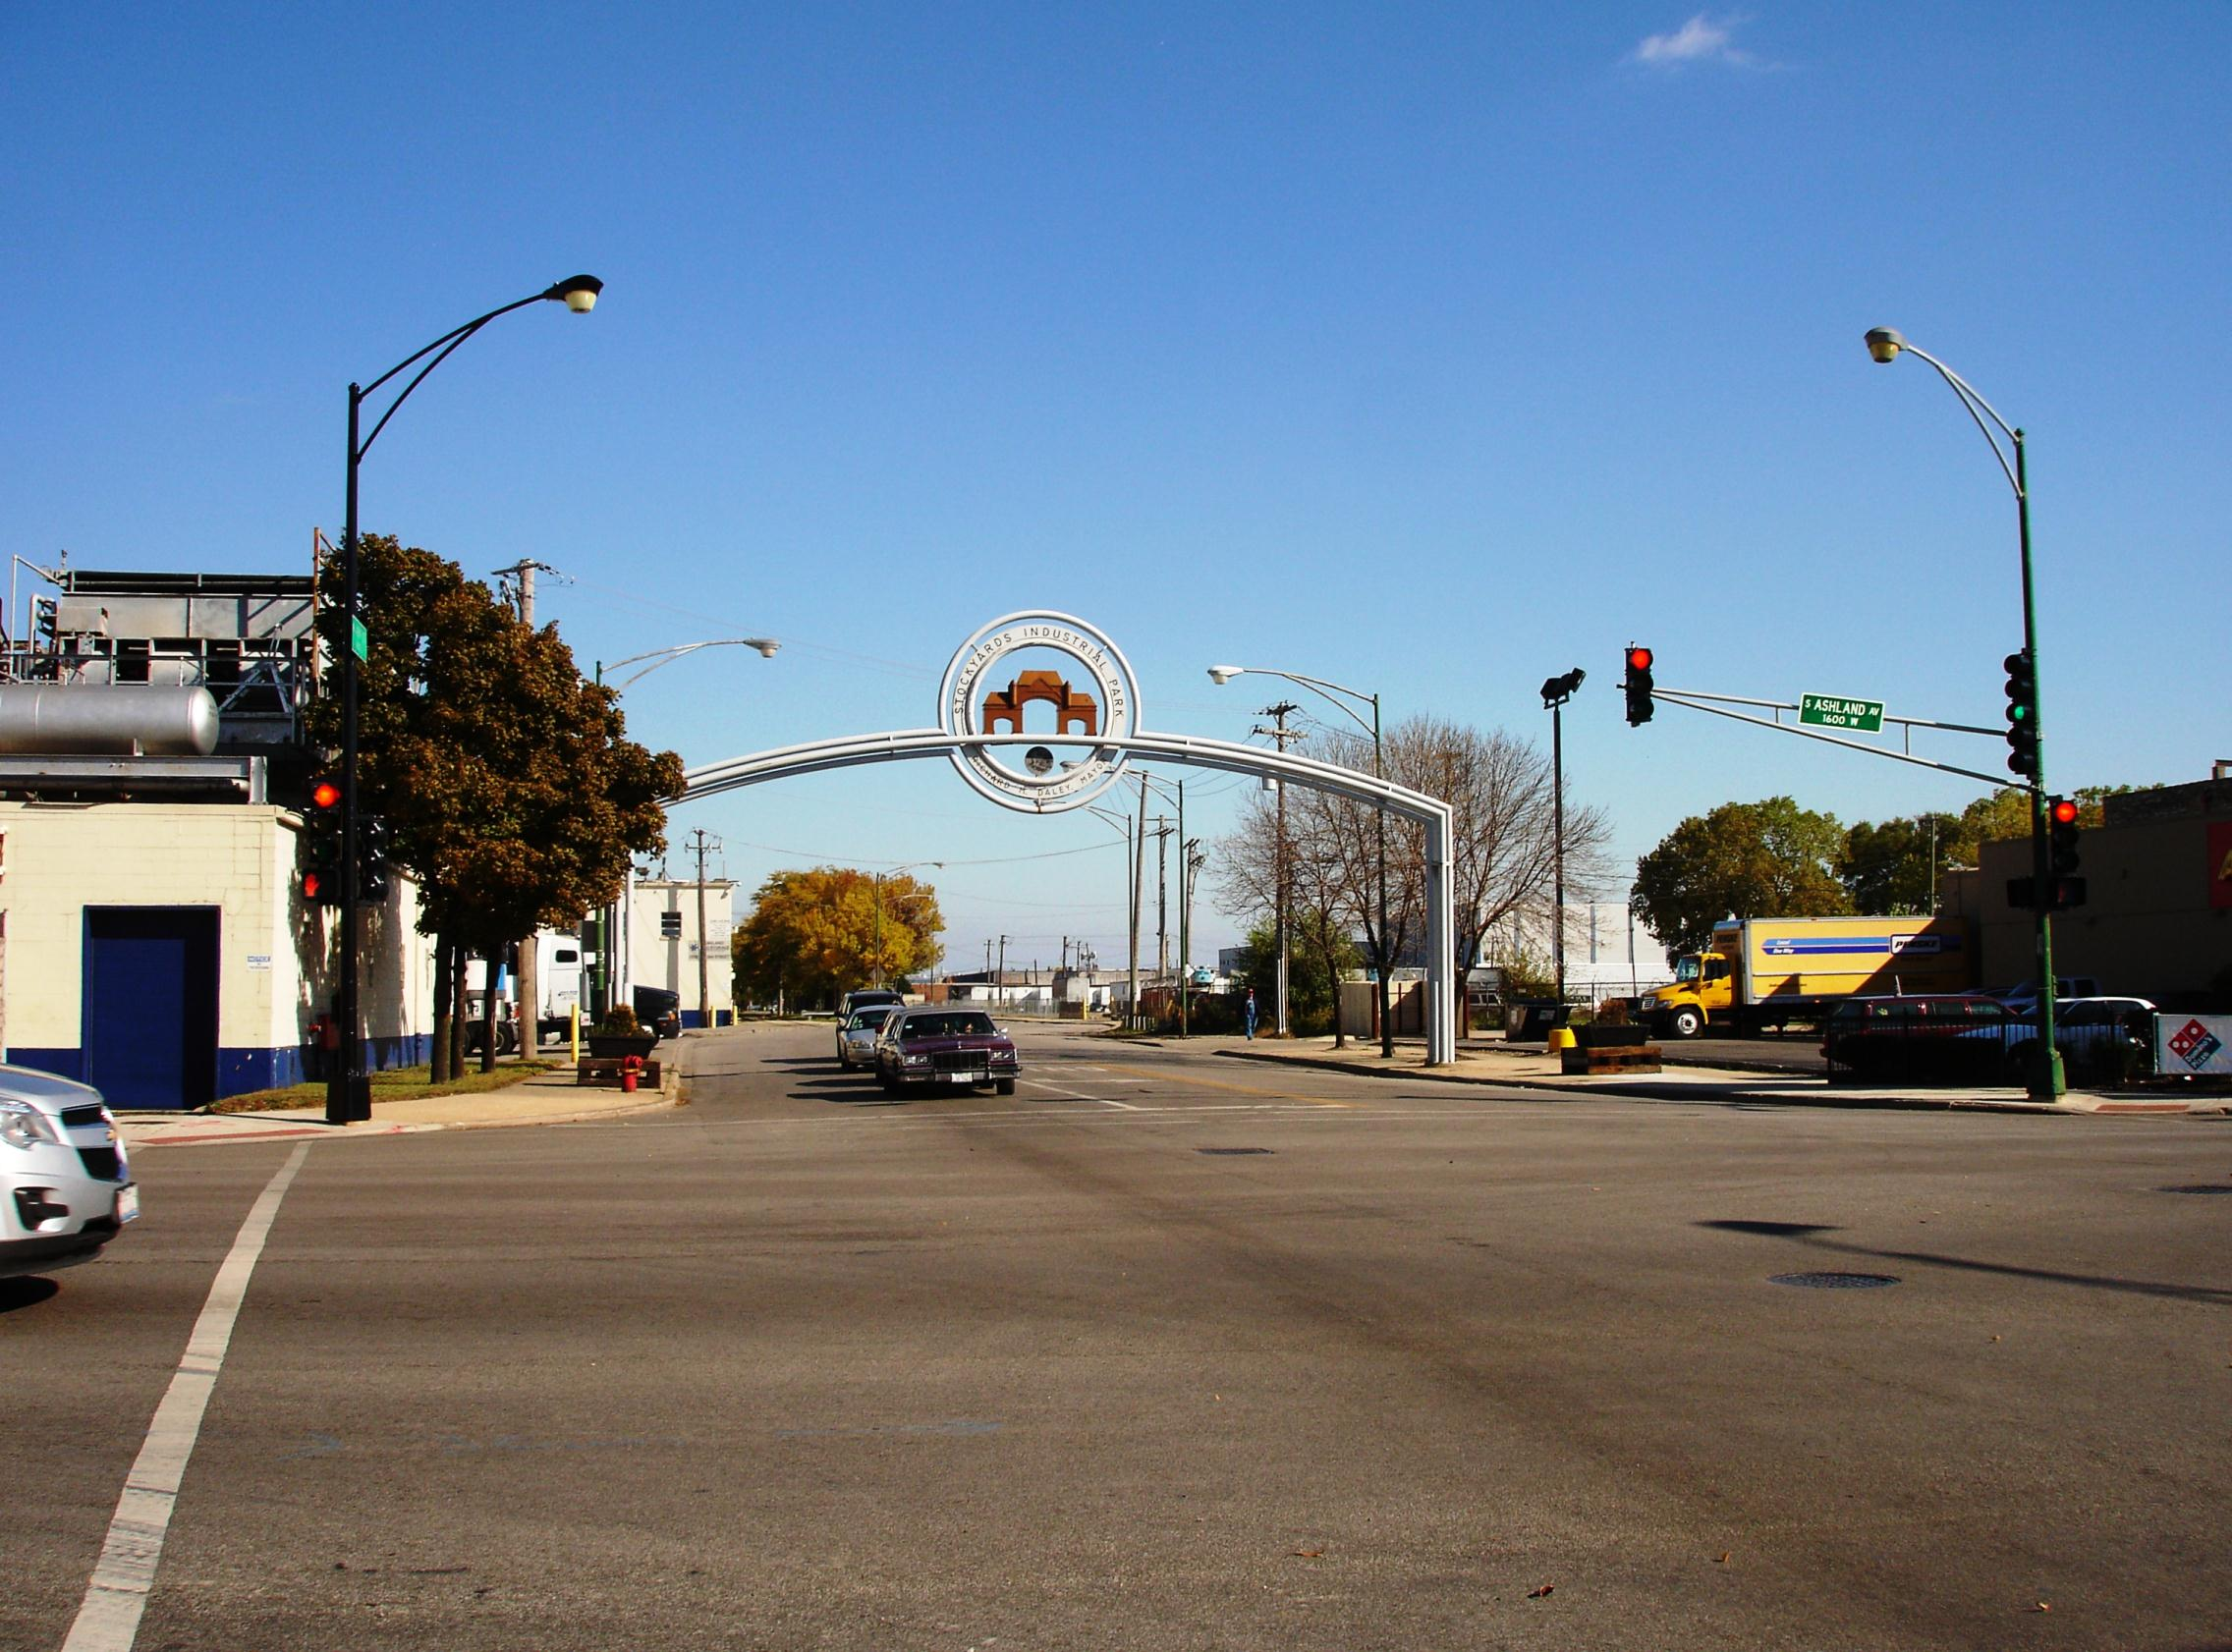 Here's that same entrance to the old stockyards today.